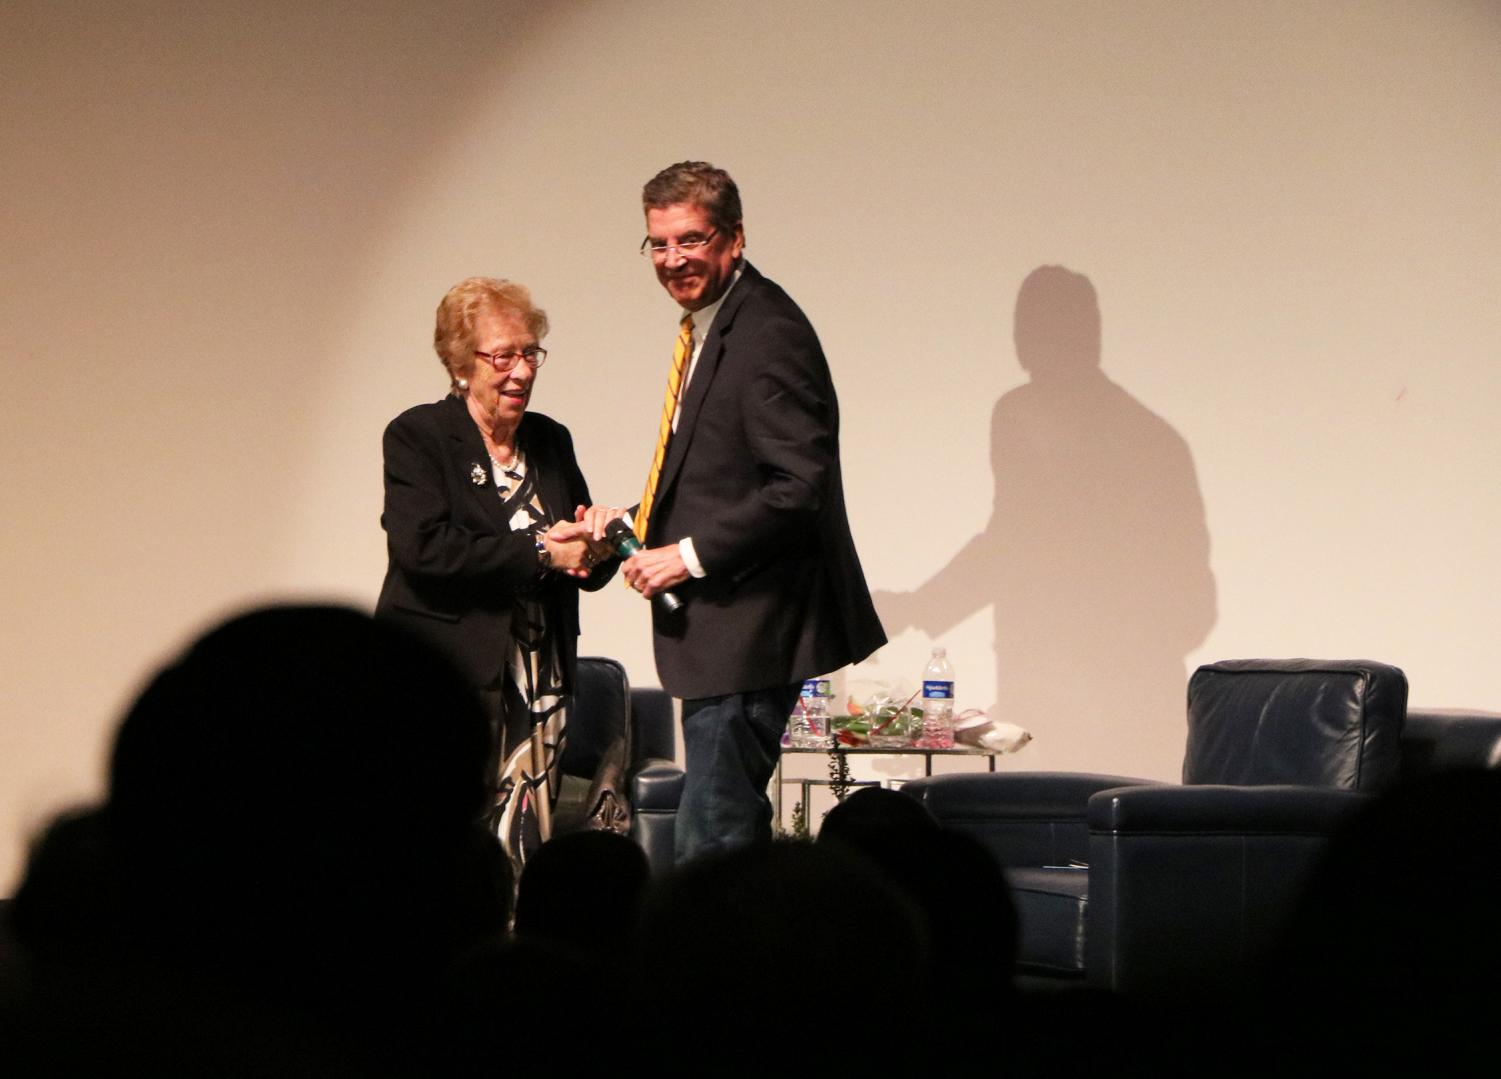 Eva Schloss, Holocaust survivor and stepsister of Anne Frank, with Richard Beene, Kern 1180 Radio Host, after discussing Schloss's story as a Holocaust survivor in March 12, at the Fox Theater Bakersfield.